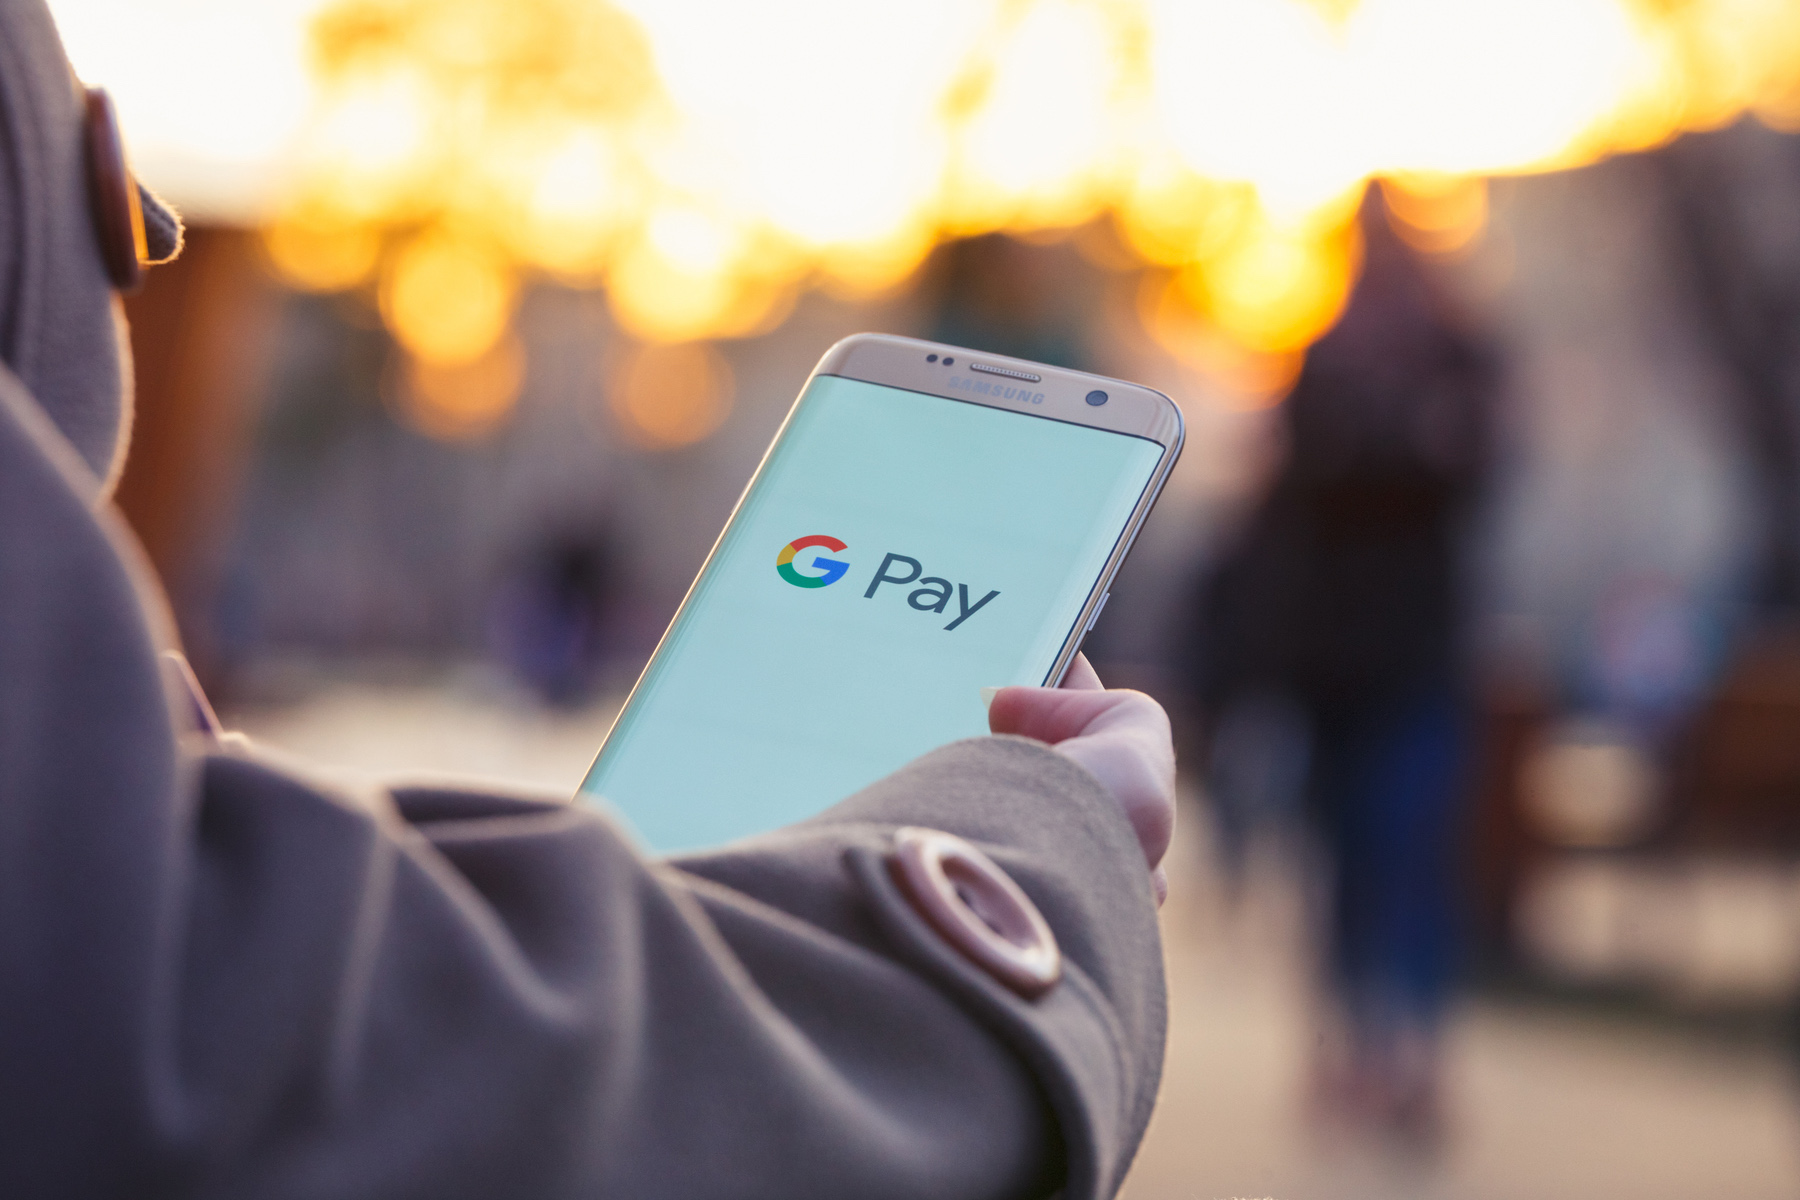 Using Google Pay on a phone